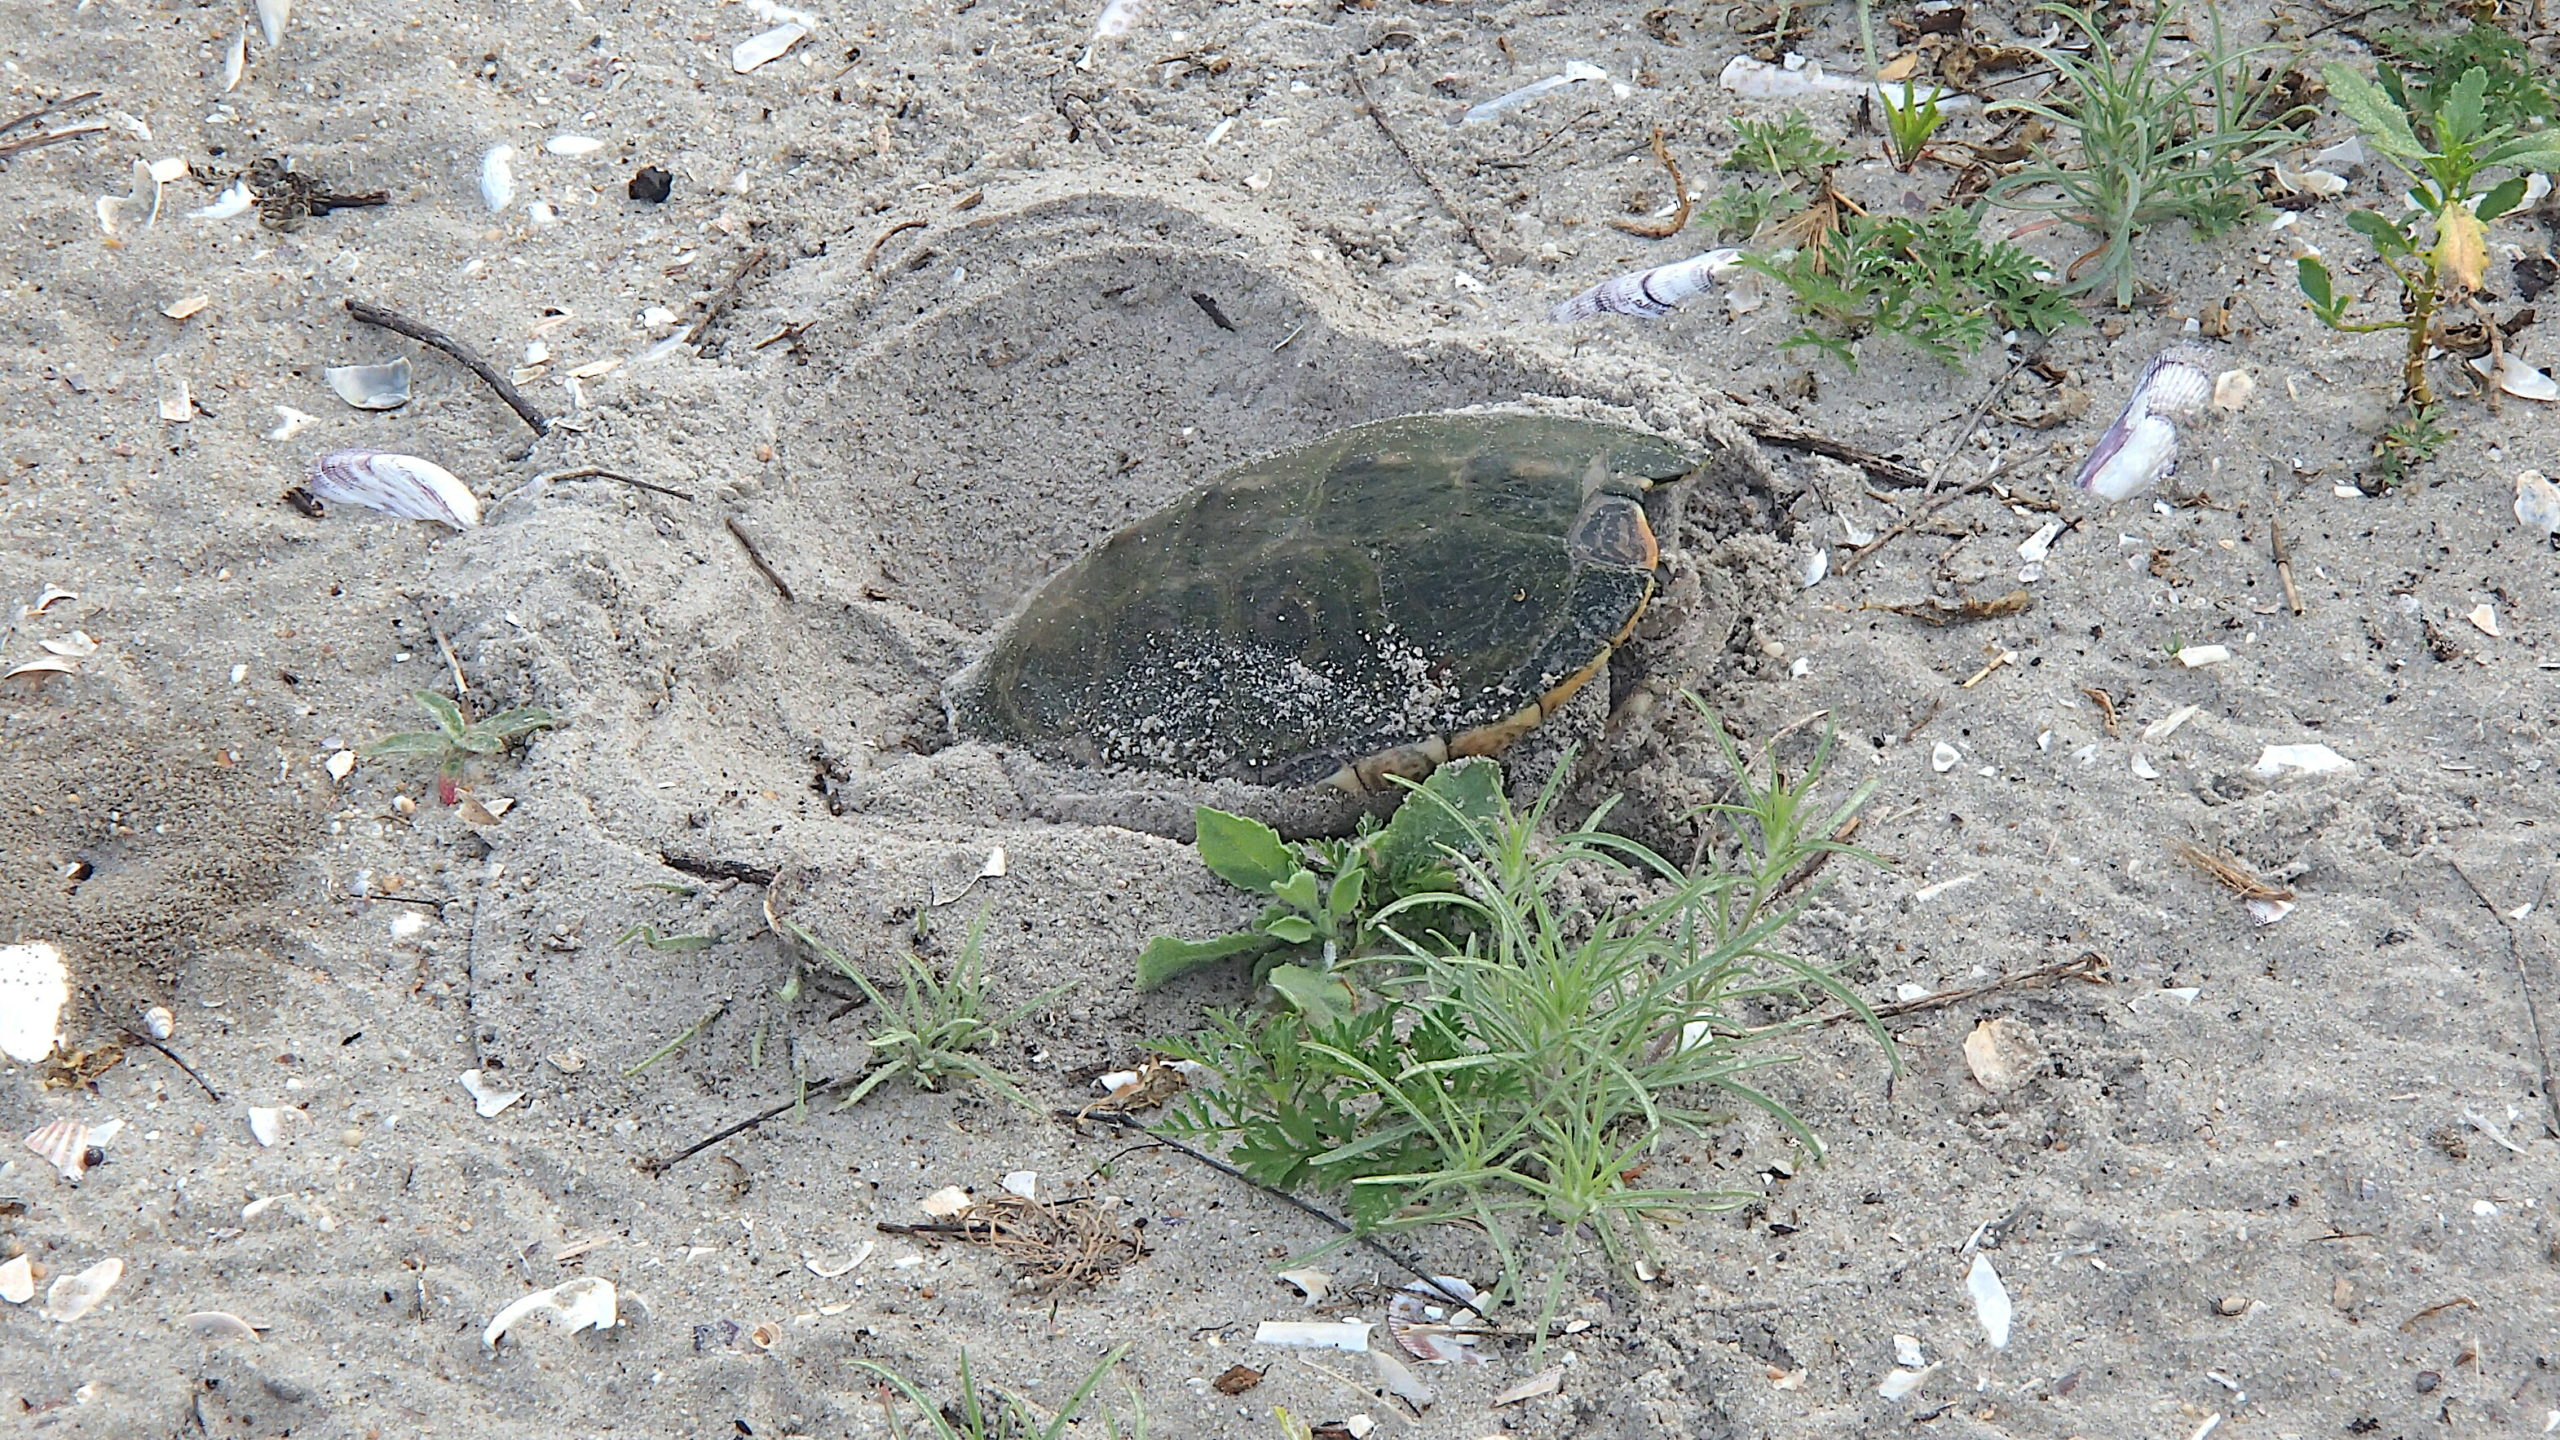 The females of all seven of our native turtles species are moving in search of suitable egg laying sites this month. This Diamondback Terrapins found one and is busy digging her nest. mike bottini photo